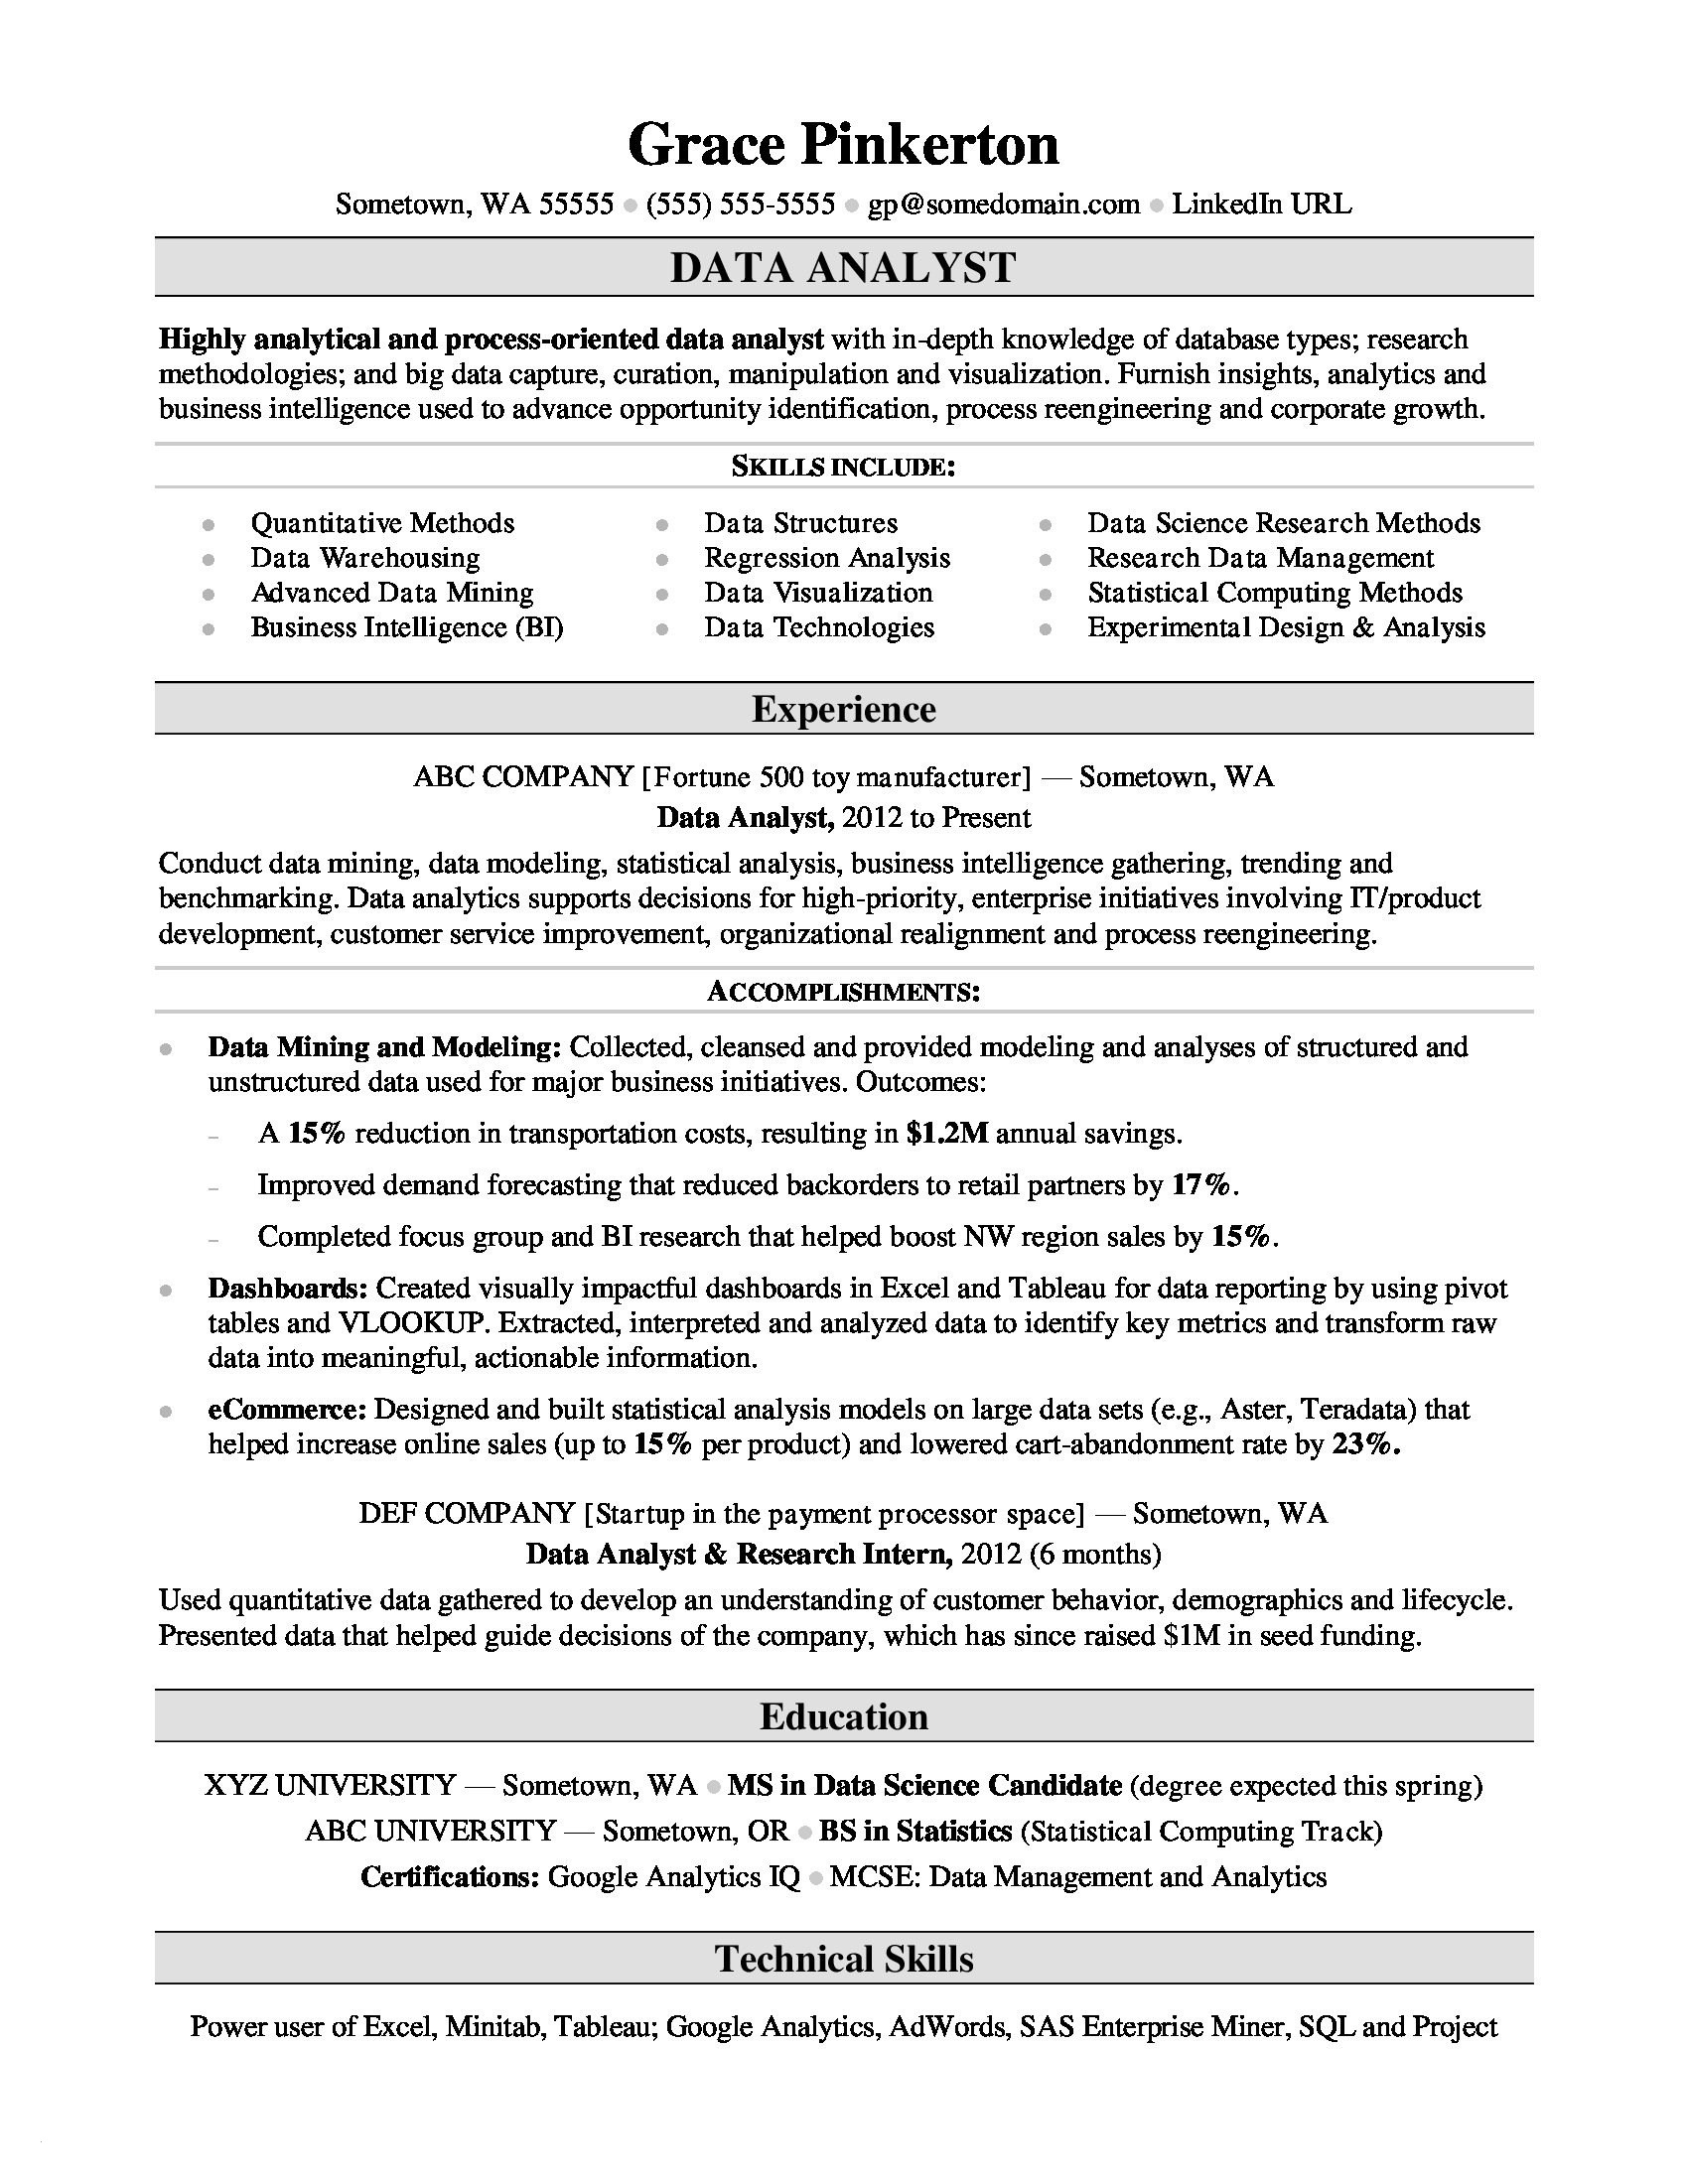 Data Analyst Resume - Entry Level Business Analyst Resume New Awesome Healthcare Business